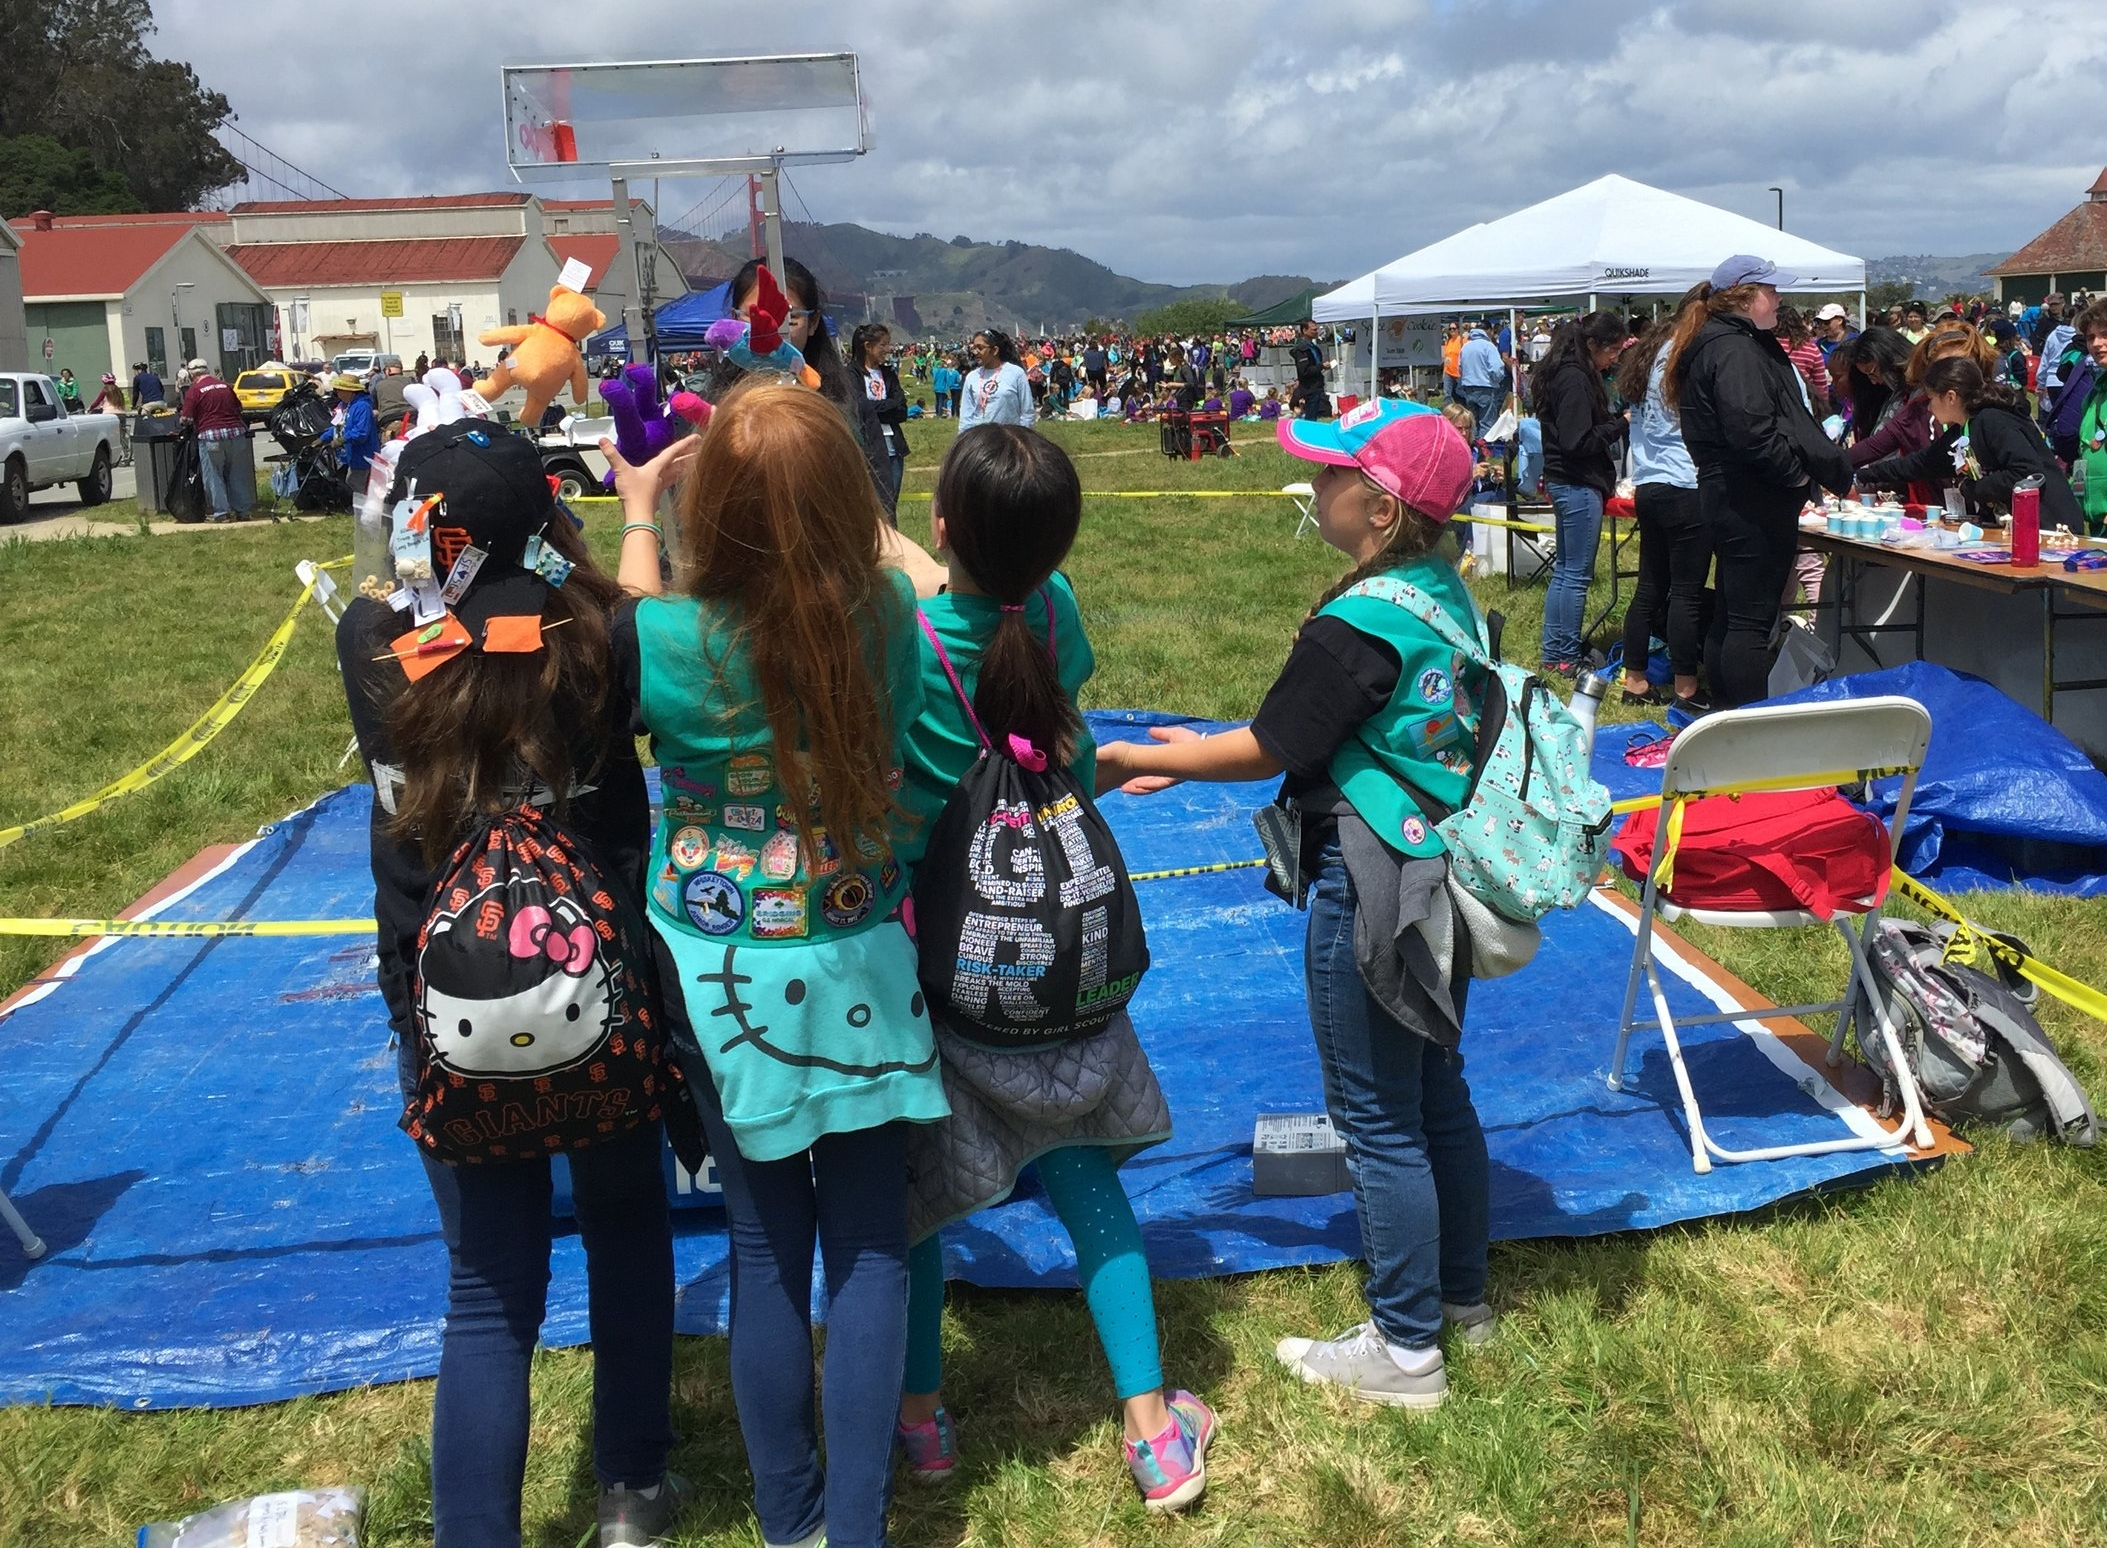 Space Cookies show younger girls how to drive the robot at Golden Gate Bridging